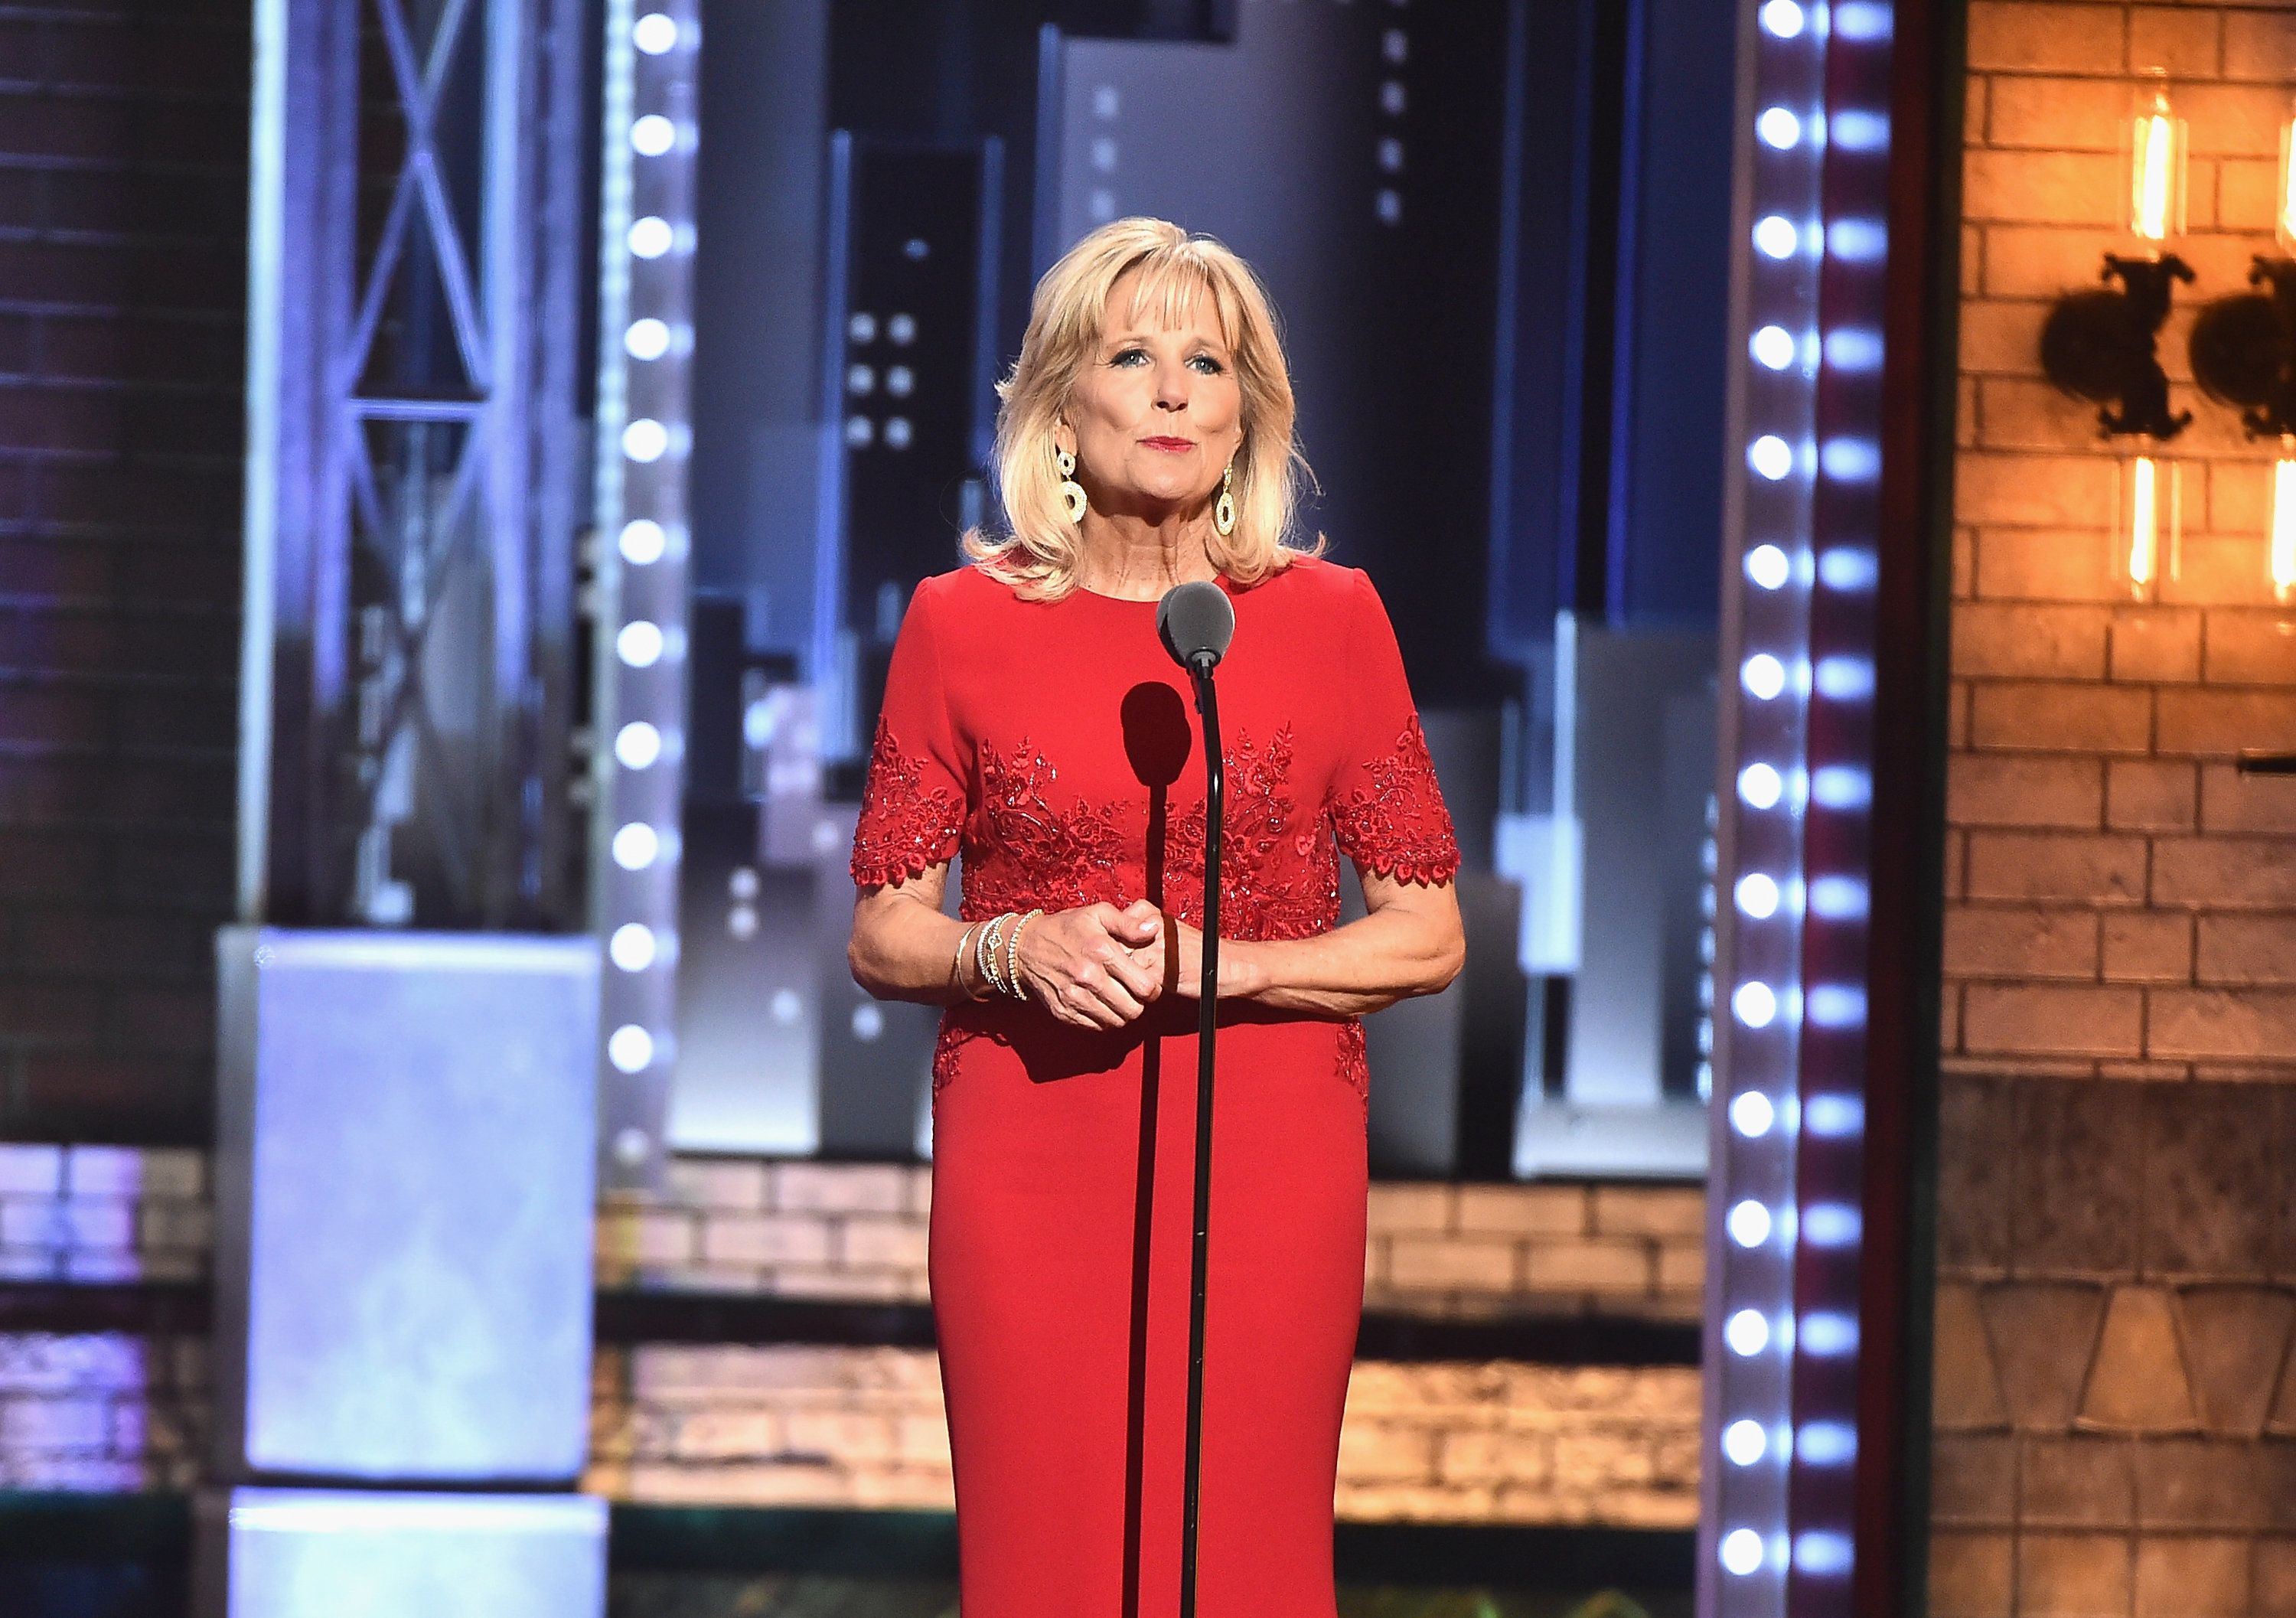 Jill Biden speaks onstage during the 2017 Tony Awards in New York.